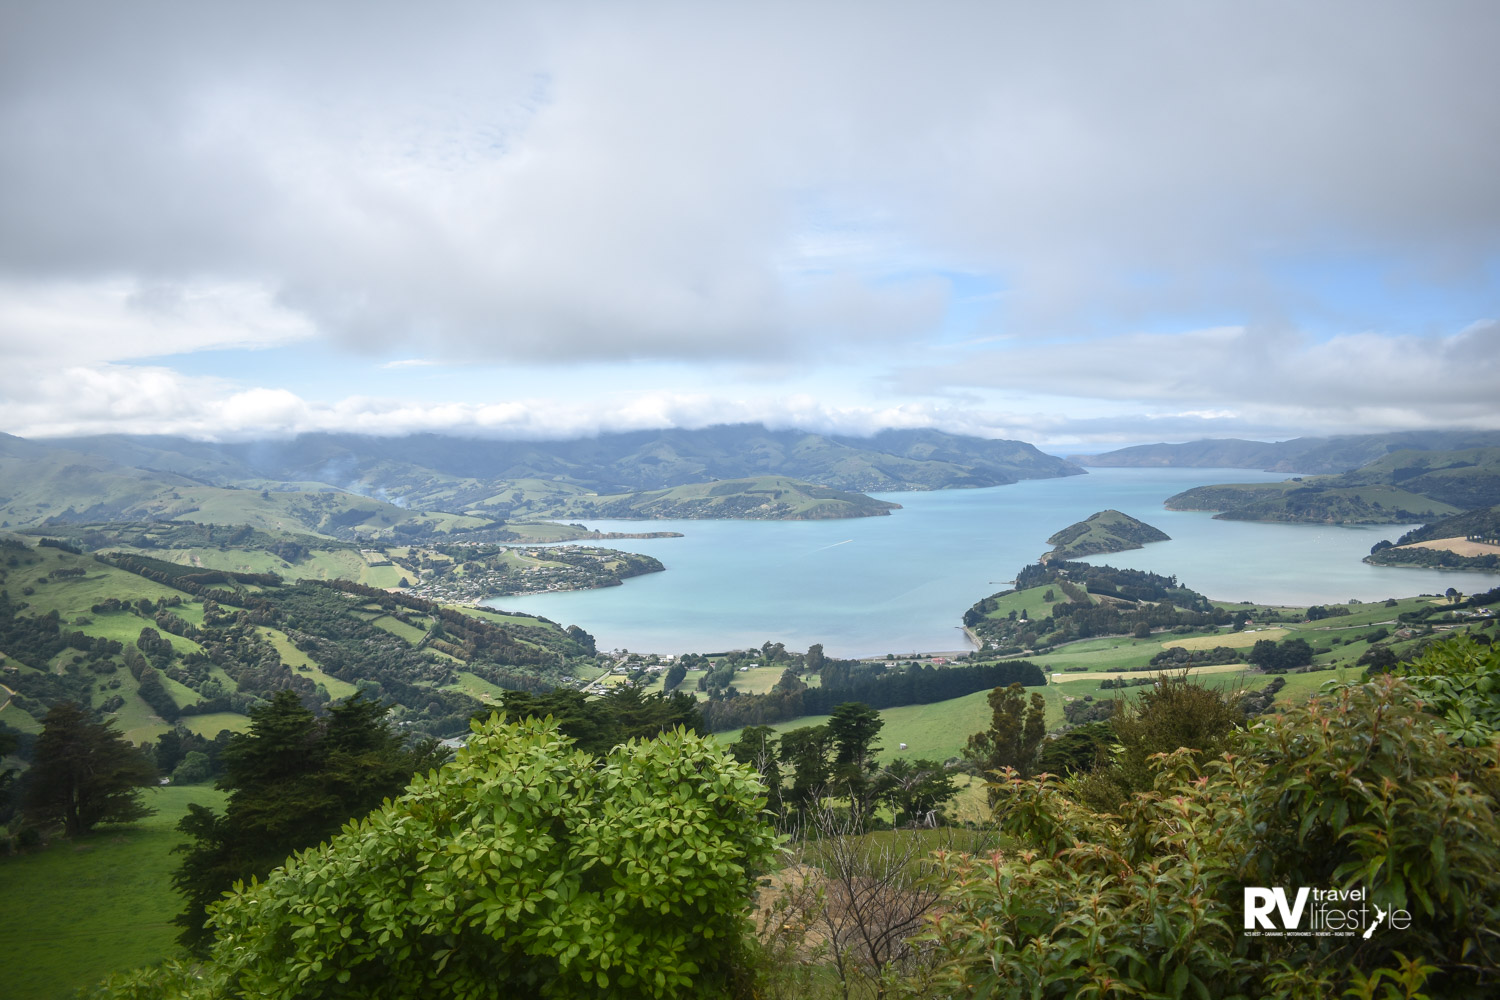 Looking over Akaroa Harbour